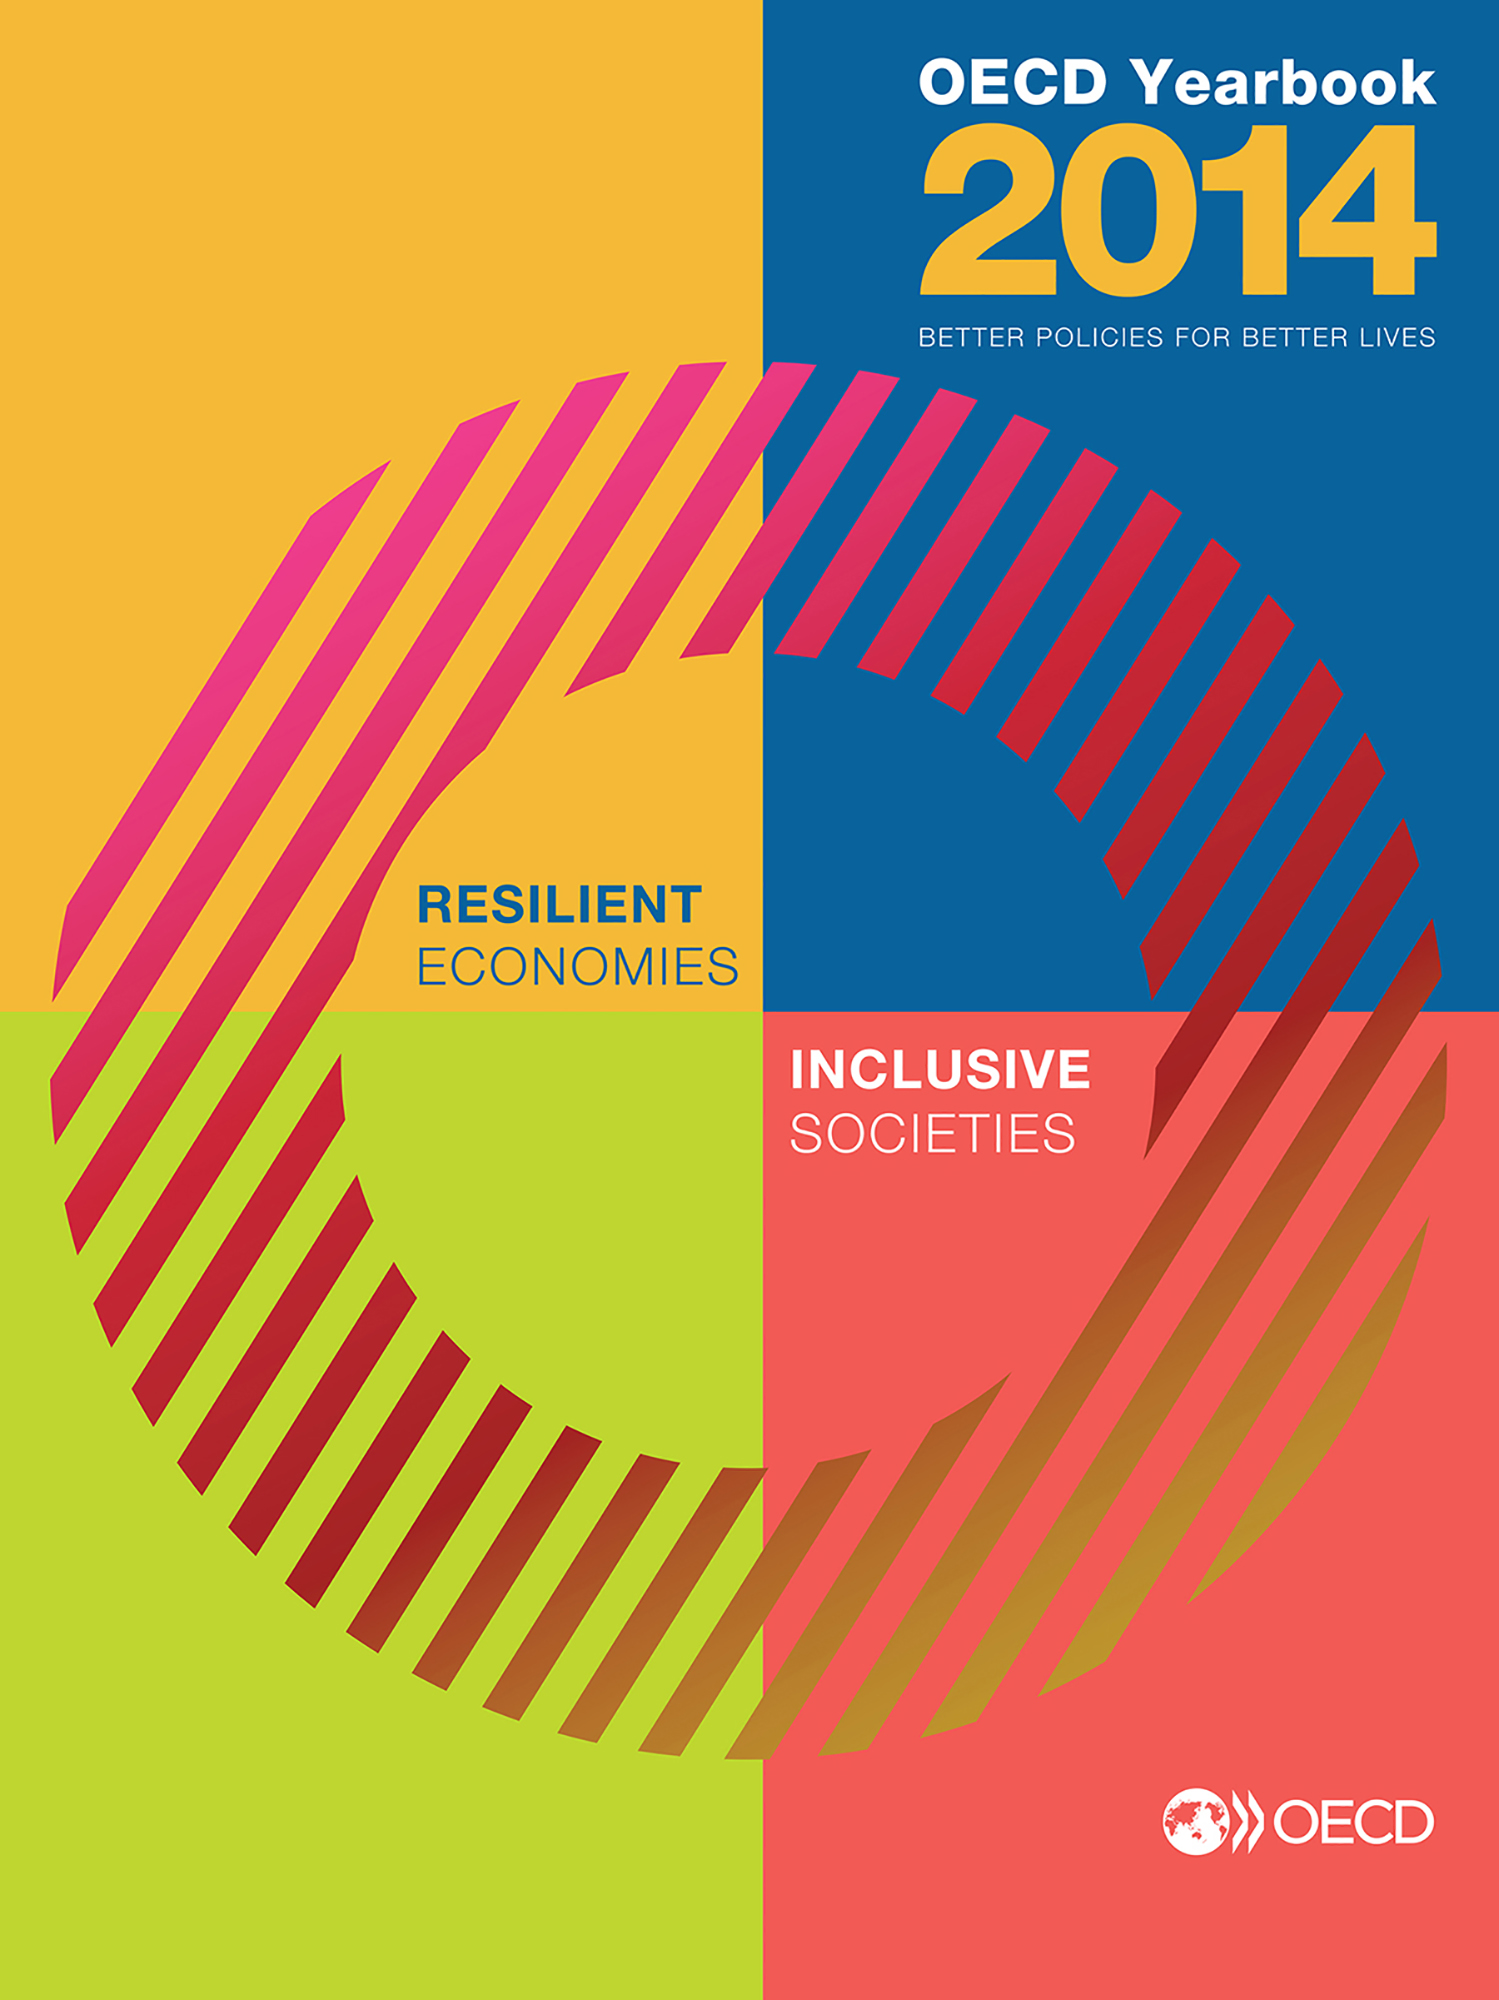 Cover image: OECD Yearbook 2014